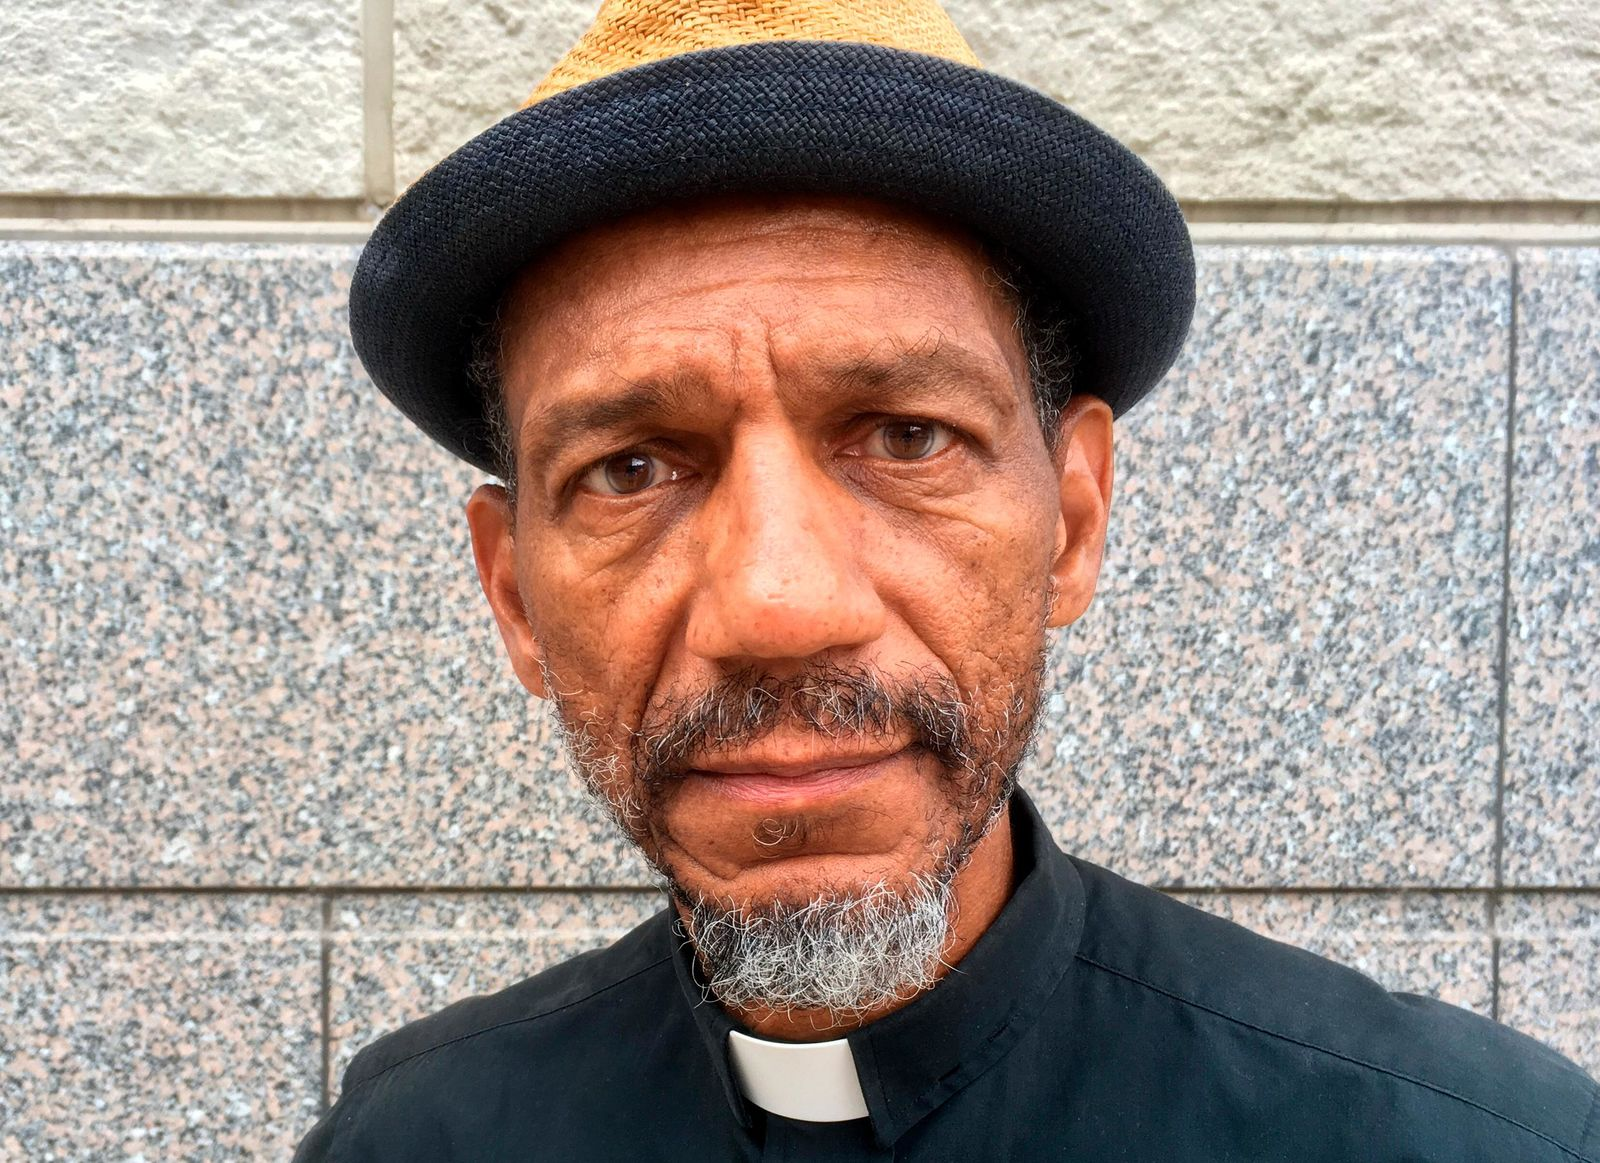 FILE - In this Oct. 5, 2017 file photo, Darryl Gray, a pastor with deep roots in civil rights activism who serves as a mentor to the unofficial leaders of the so-called Frontline protest movement, poses for a photo in St. Louis. (AP Photo/ Jim Salter, File)